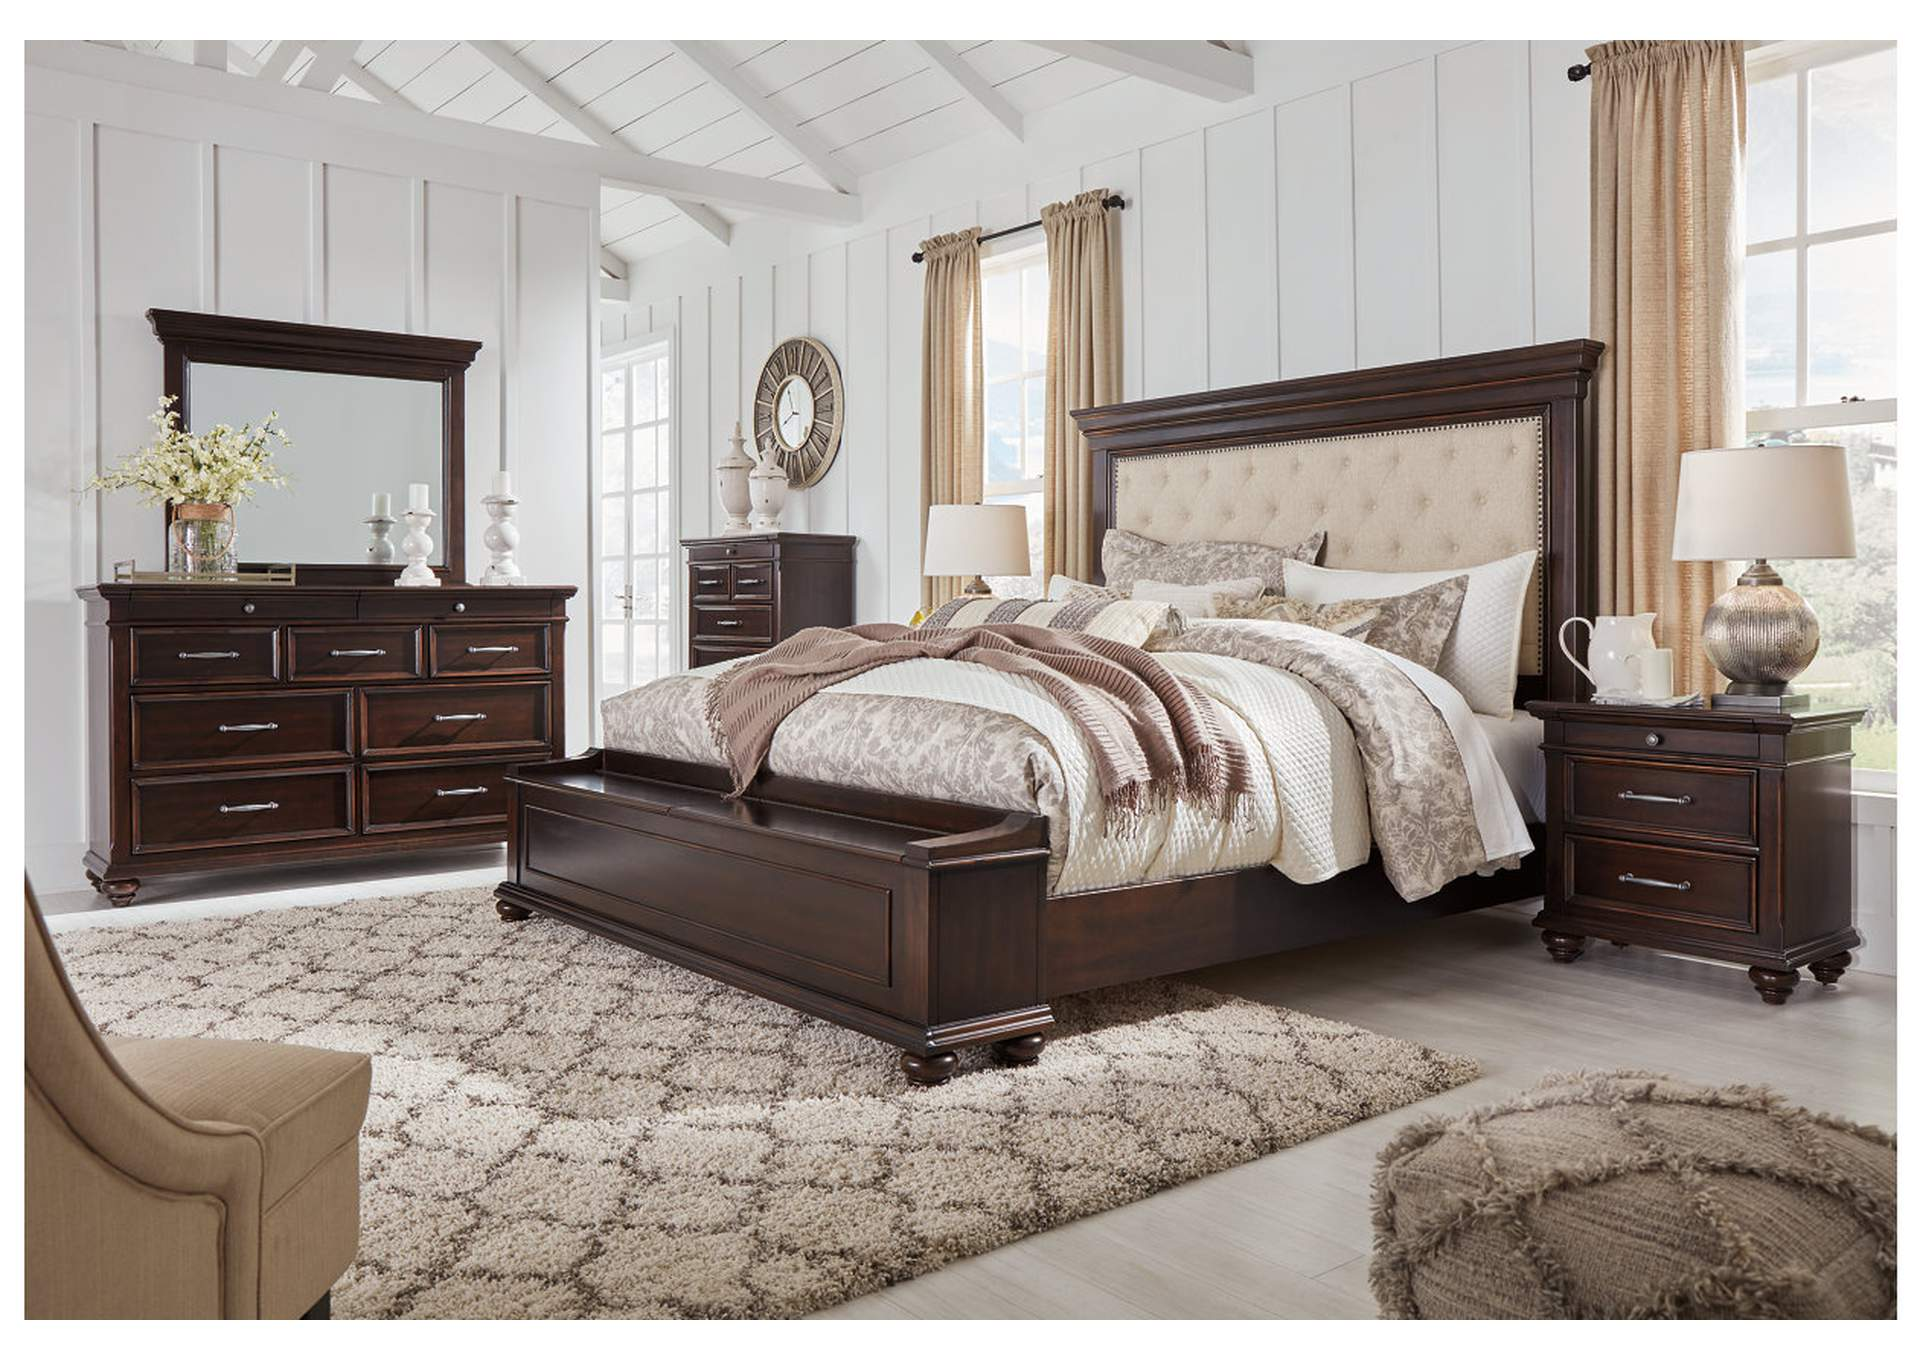 Brynhurst Brown California King Upholstered Storage Bed Dresser w/Mirror,Signature Design By Ashley